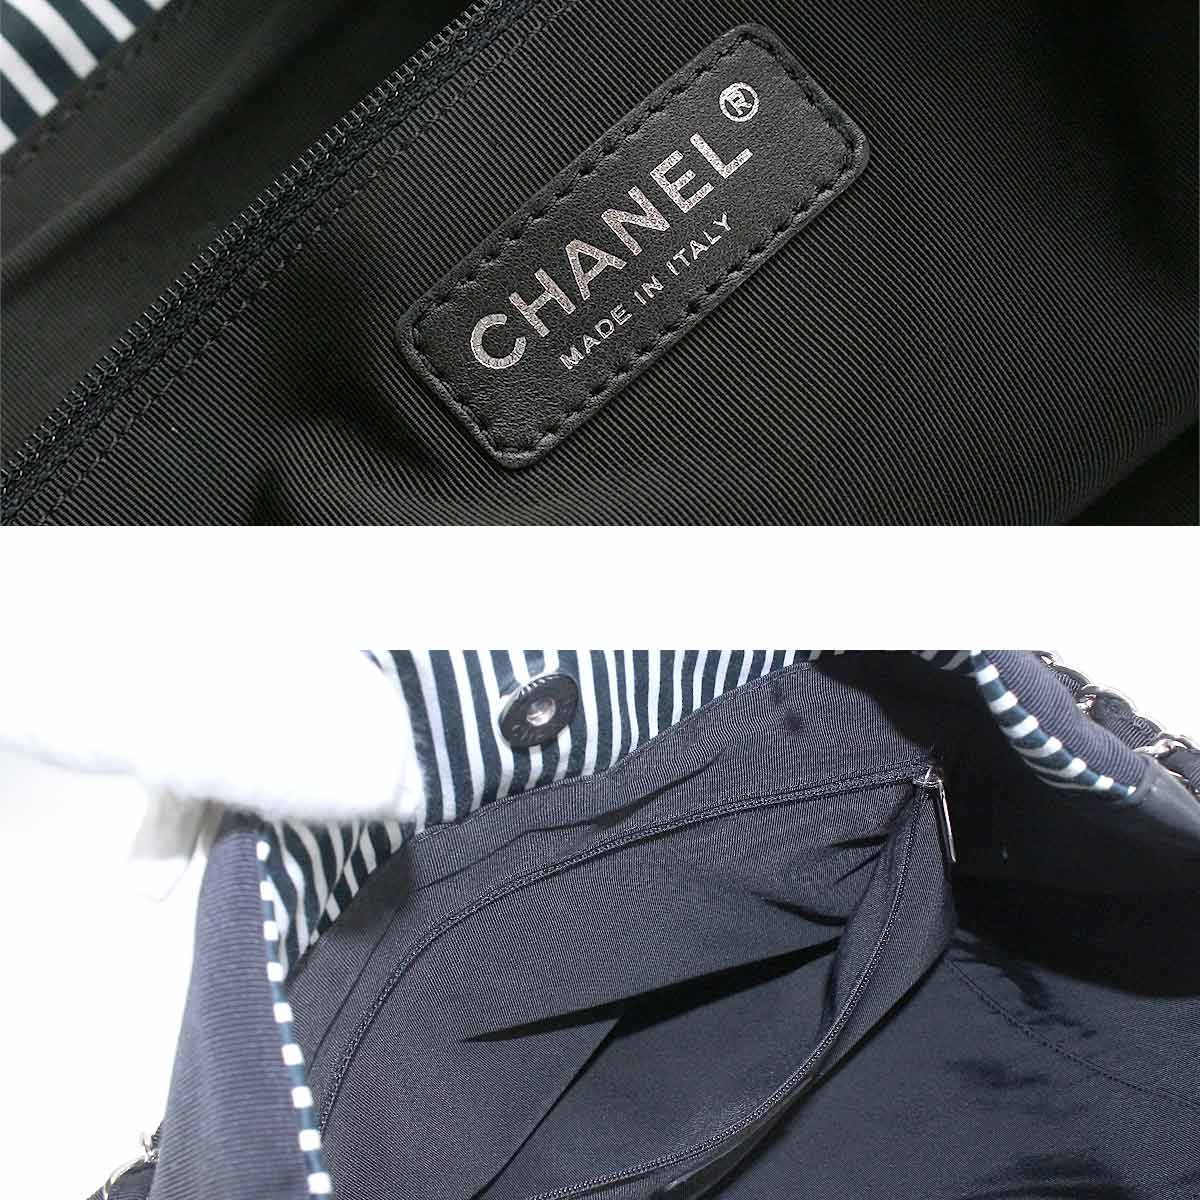 f8dcb08ca89989 Chanel CHANEL Cruise line 2way chain Thoth shoulder bag canvas leather black  white A47915